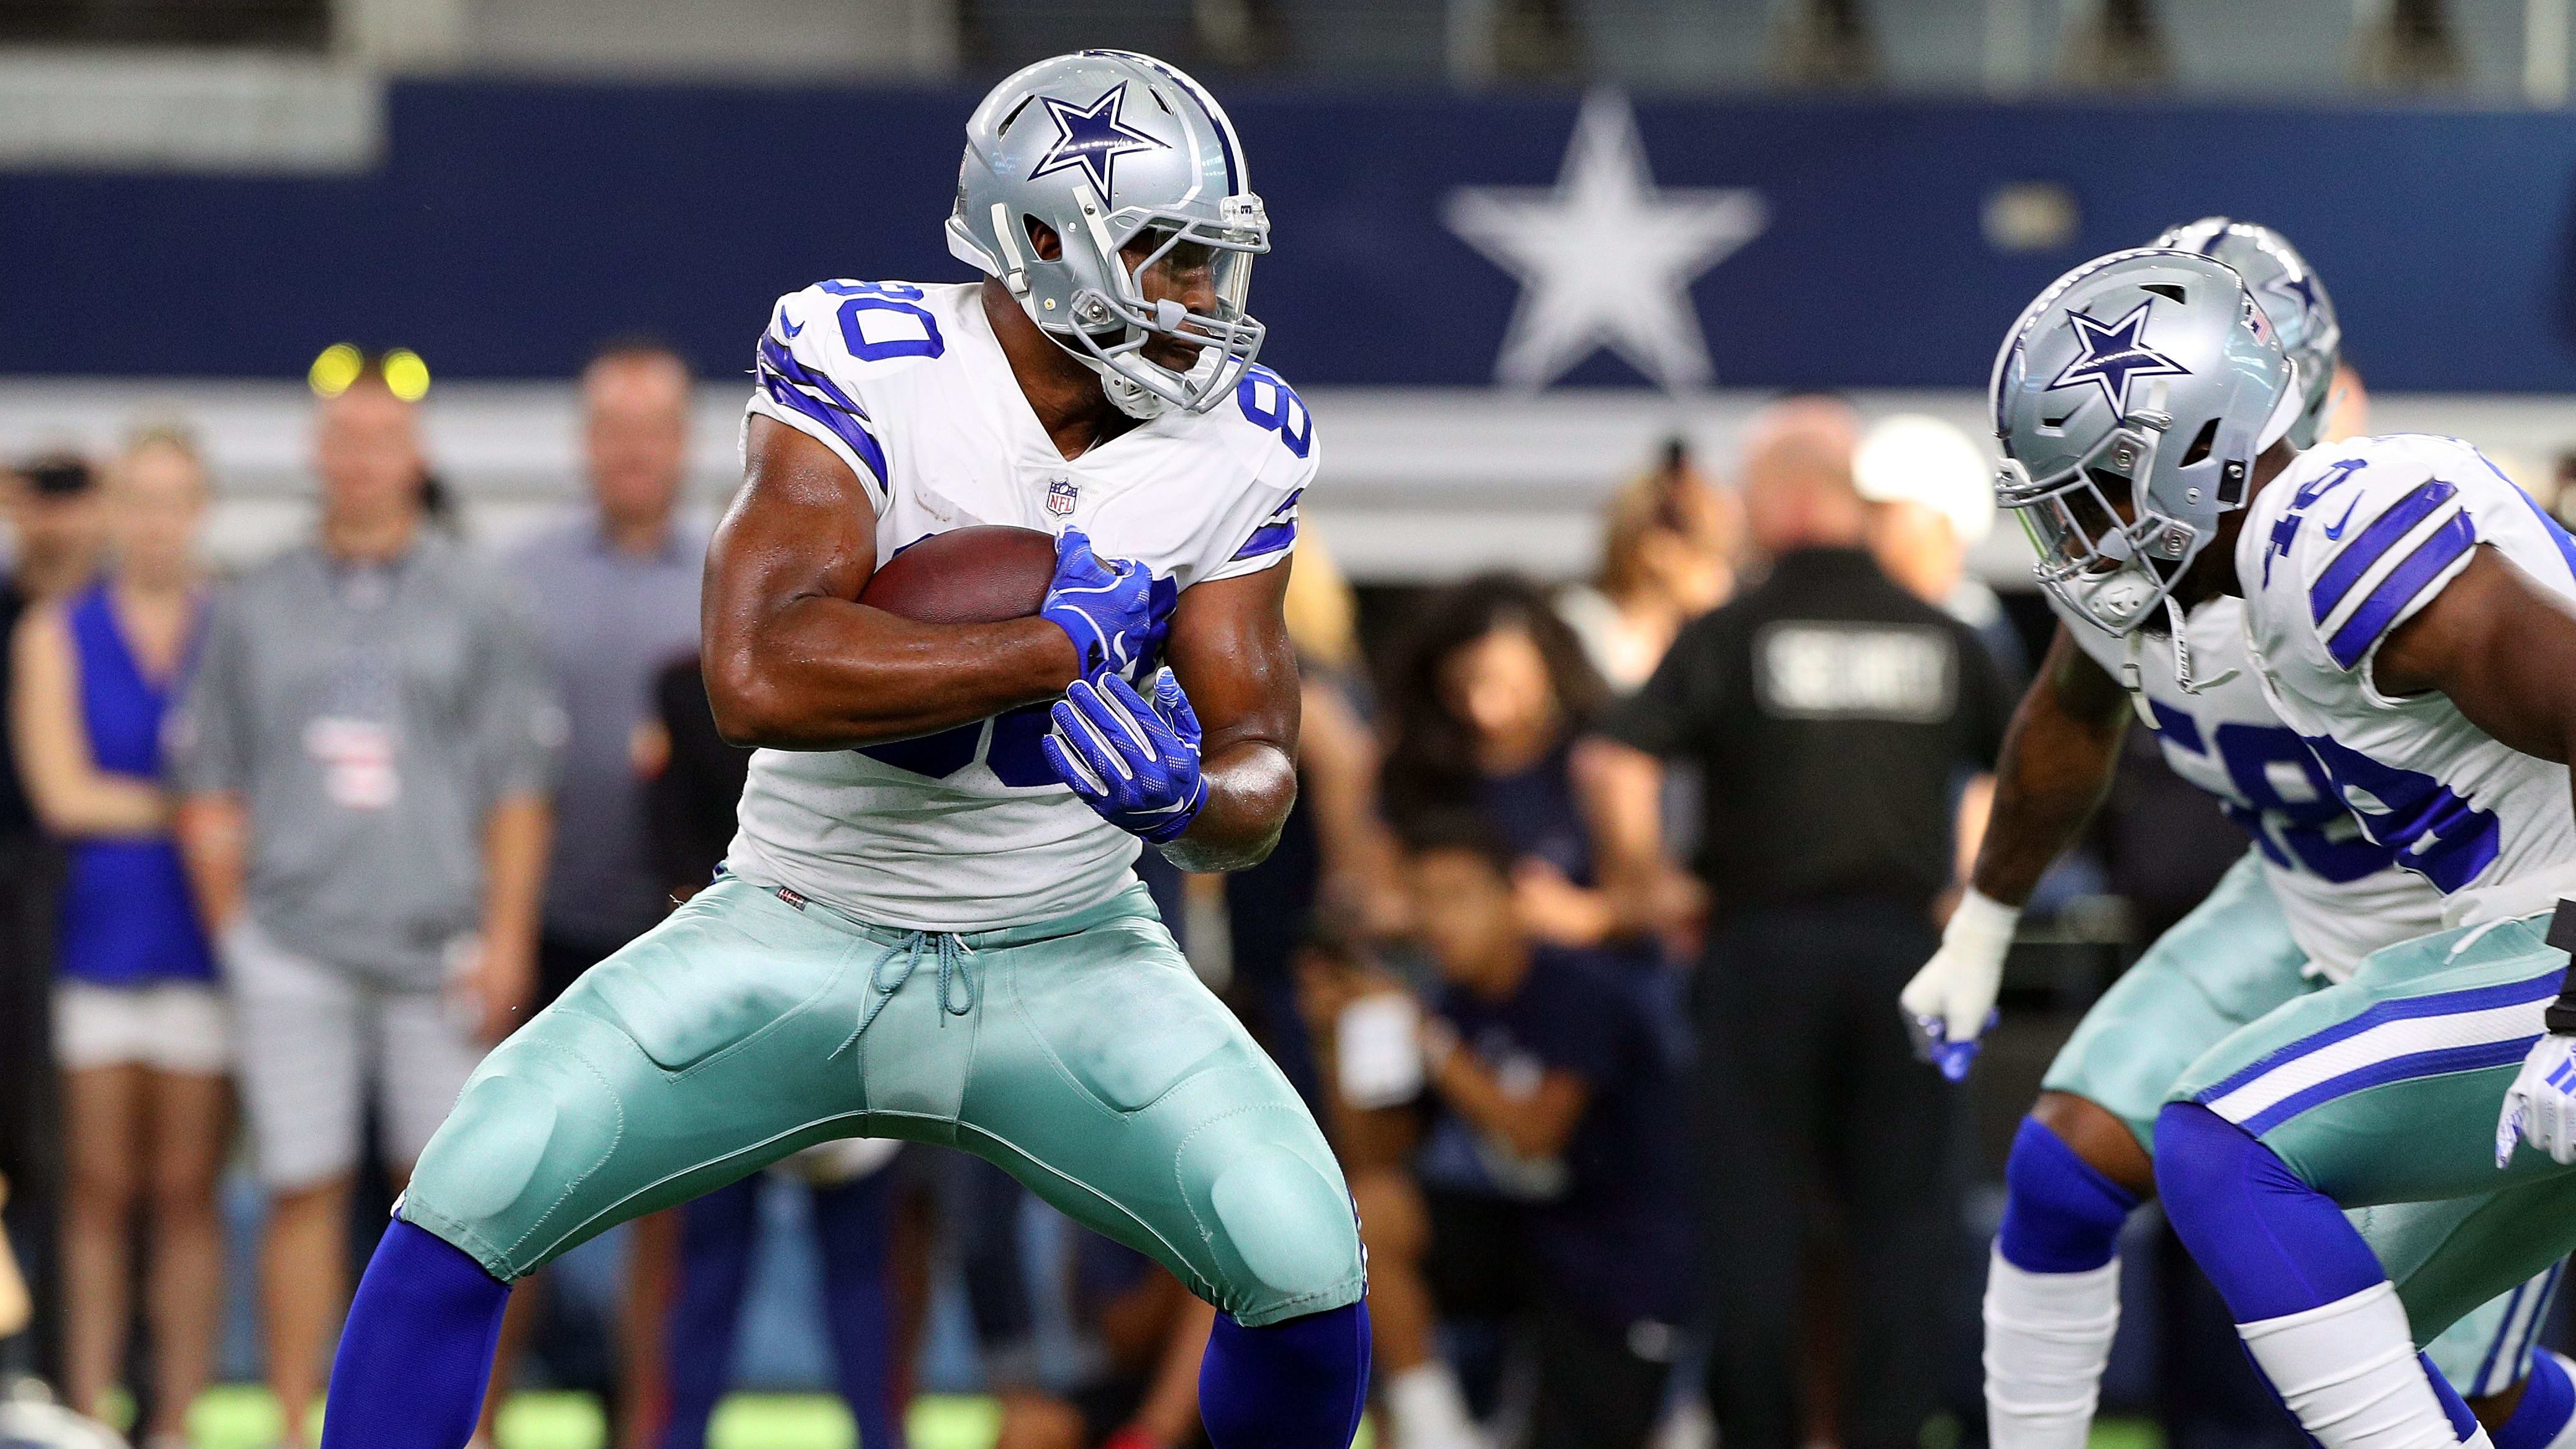 ARLINGTON, TX - AUGUST 26:  Rico Gathers #80 of the Dallas Cowboys warms up before the preseason game against the Arizona Cardinals at AT&T Stadium on August 26, 2018 in Arlington, Texas.  (Photo by Richard Rodriguez/Getty Images)